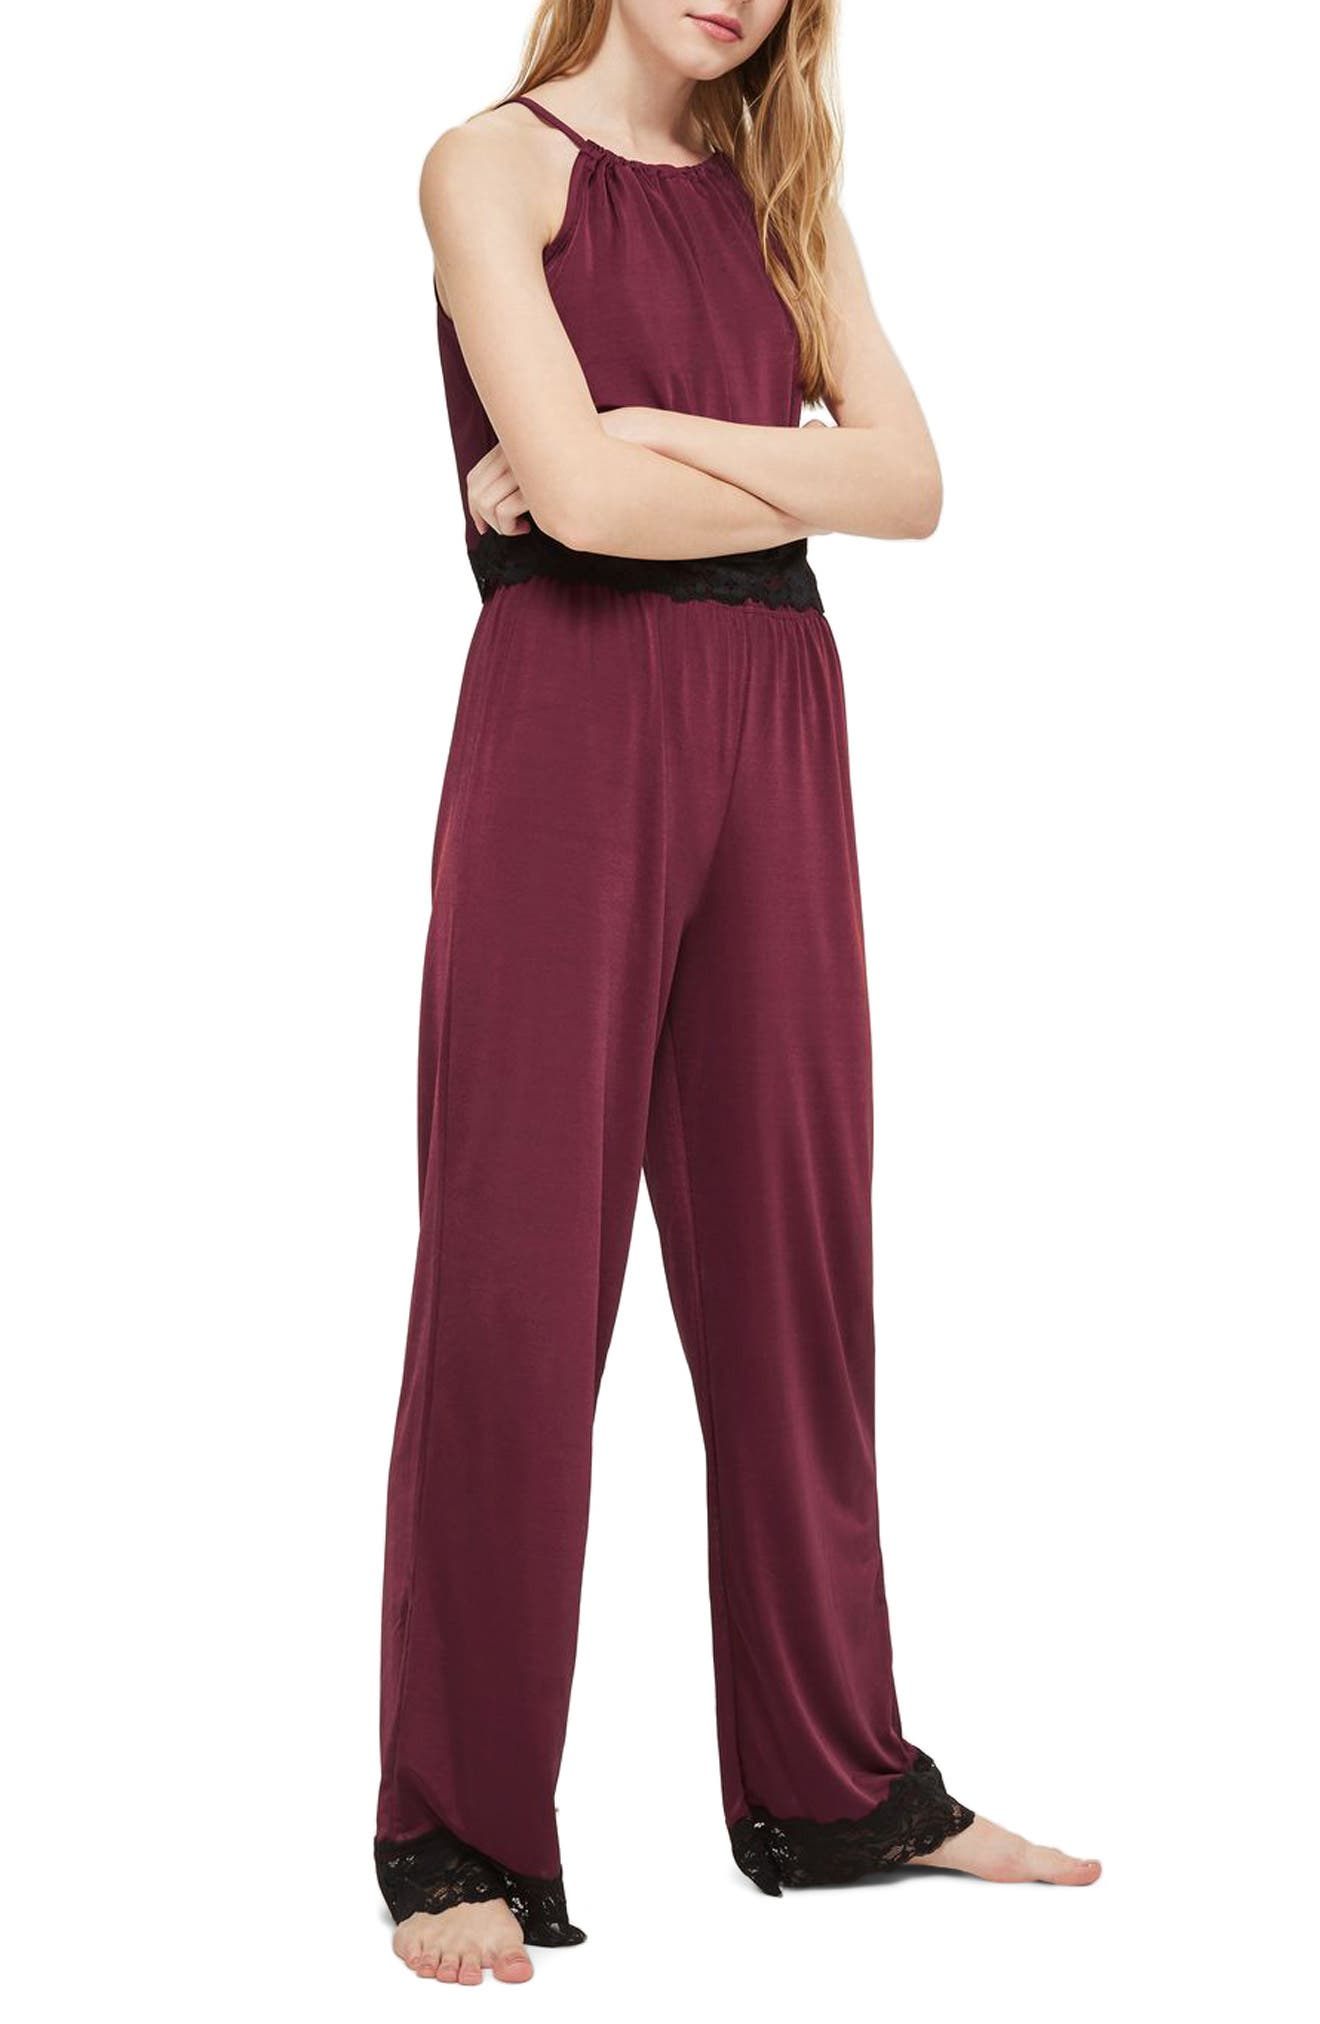 Jersey Satin & Lace Pajama Pants,                         Main,                         color, 930